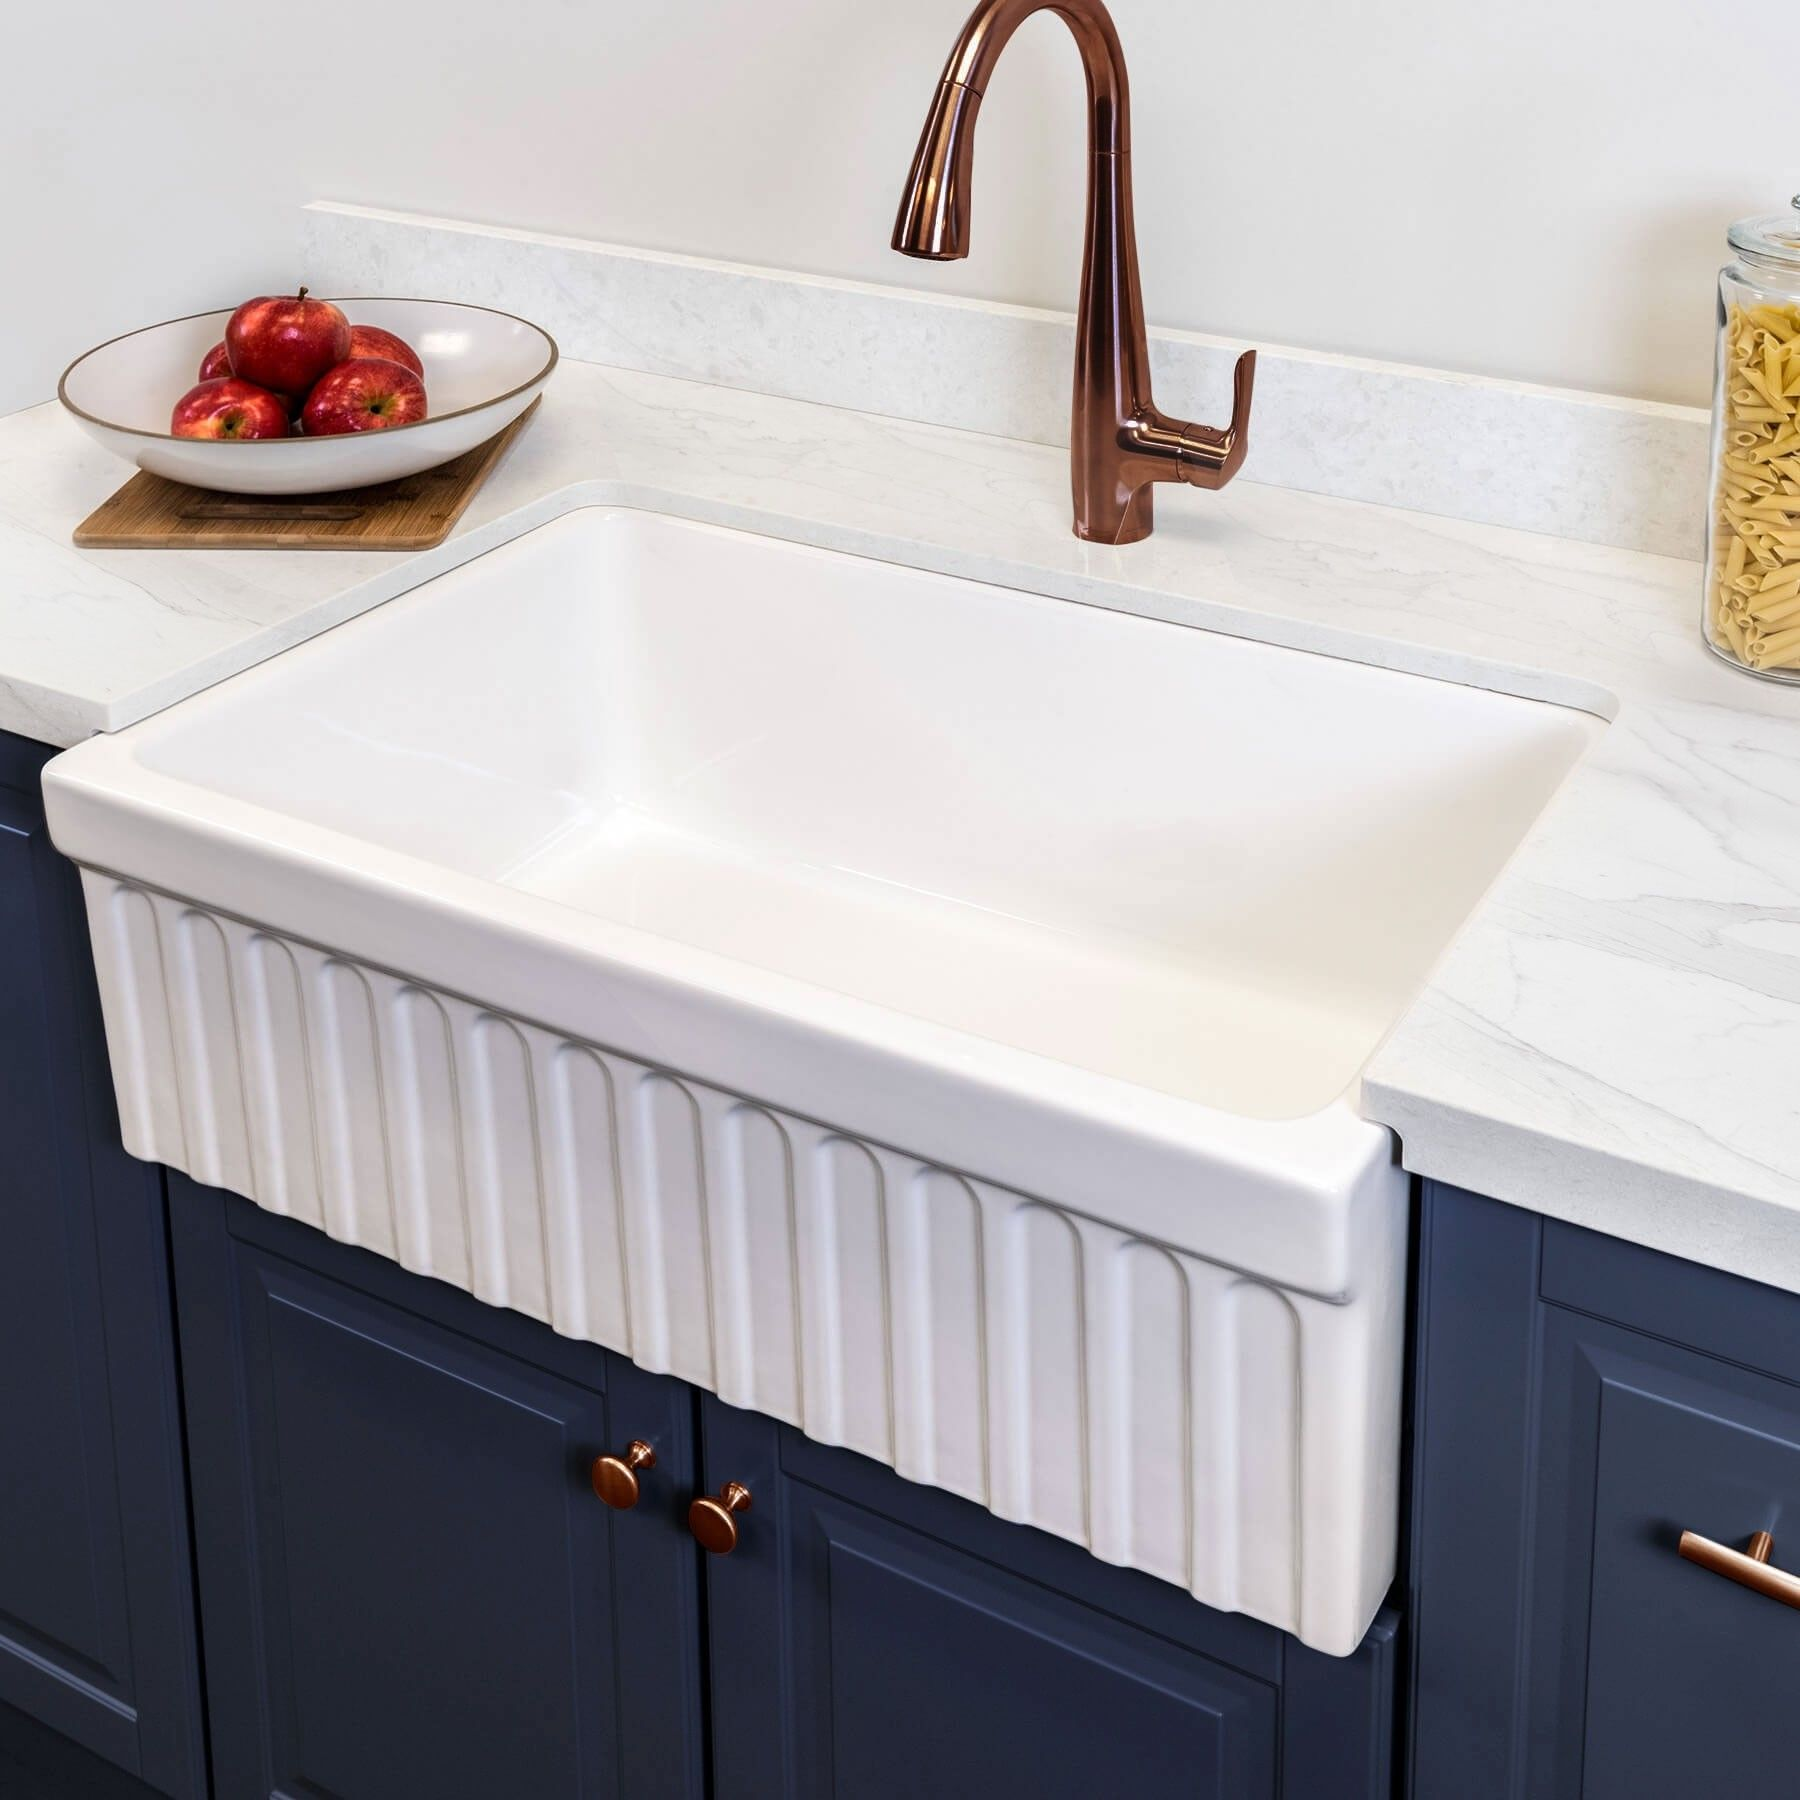 Victoria 30 Fireclay Farmhouse Kitchen Sink With Fluted Apron Farmhouse Sink Kitchen Comfortable Kitchen Sink Design